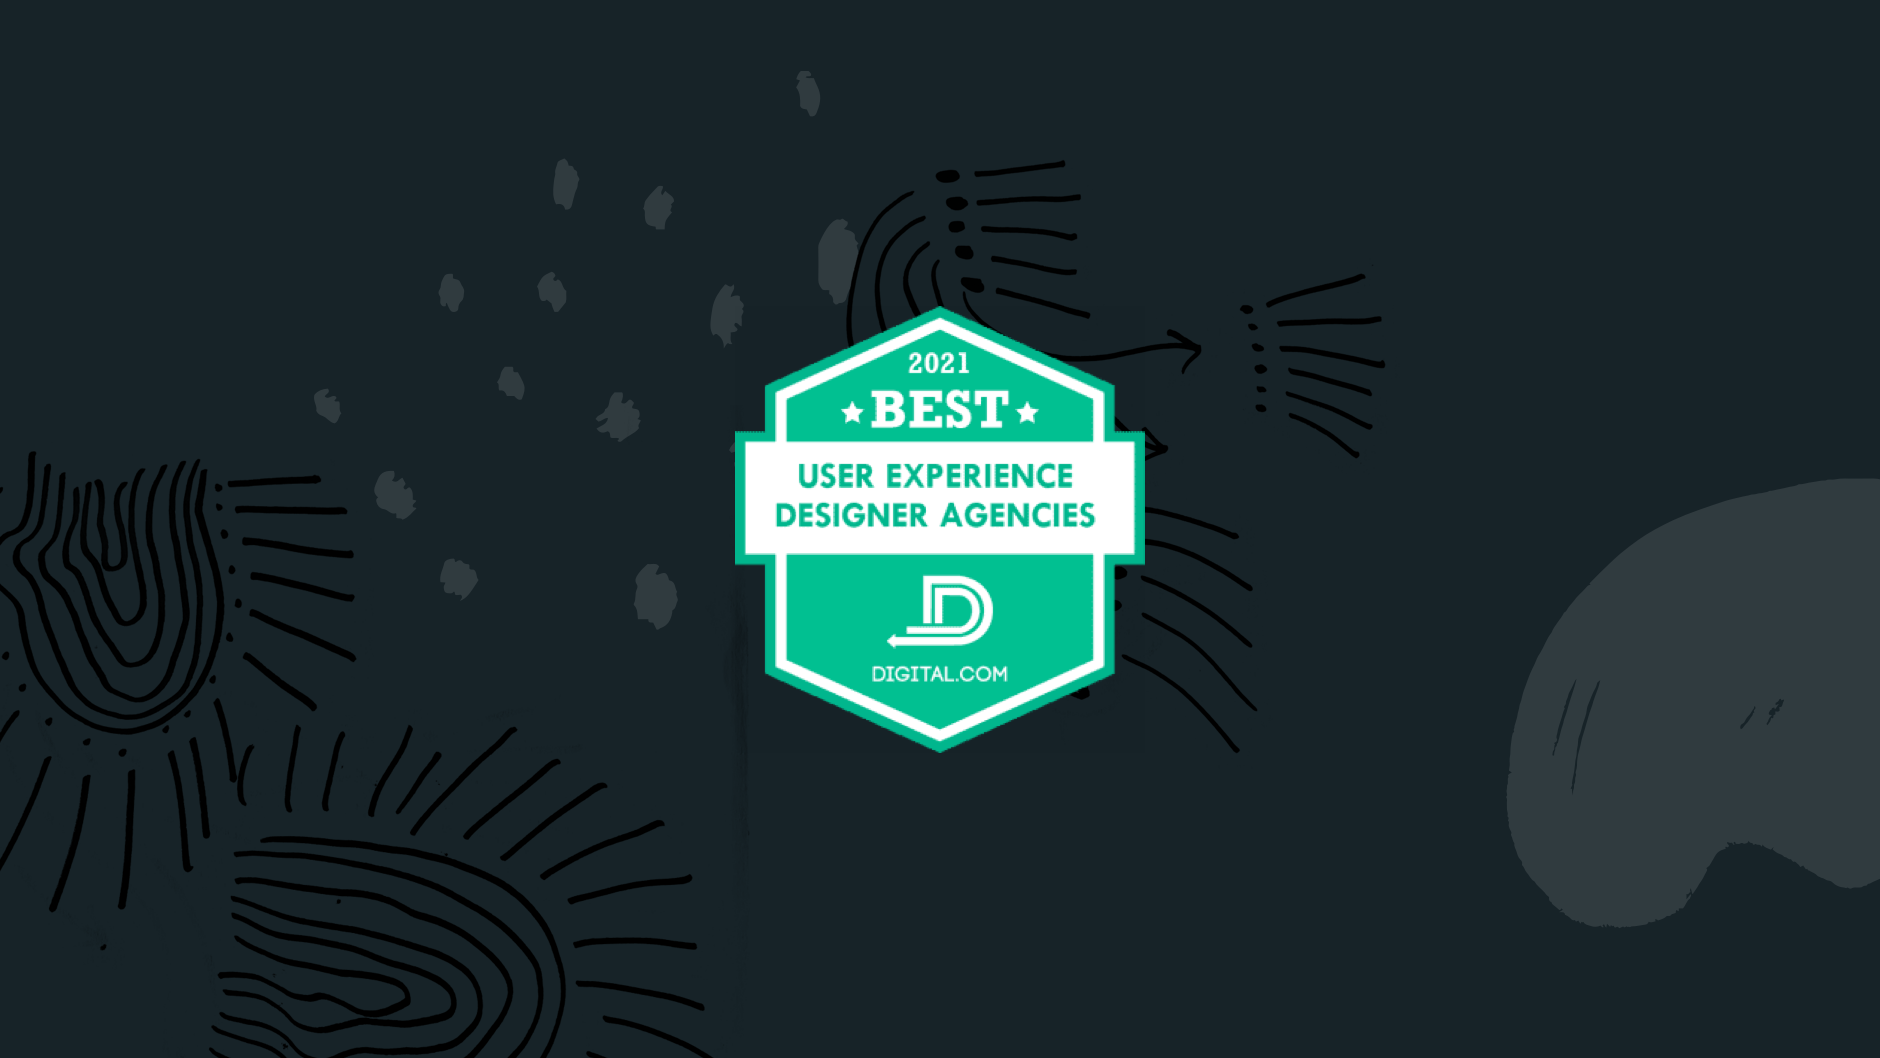 Digital.com award for the best user experience designer agencies in 2021